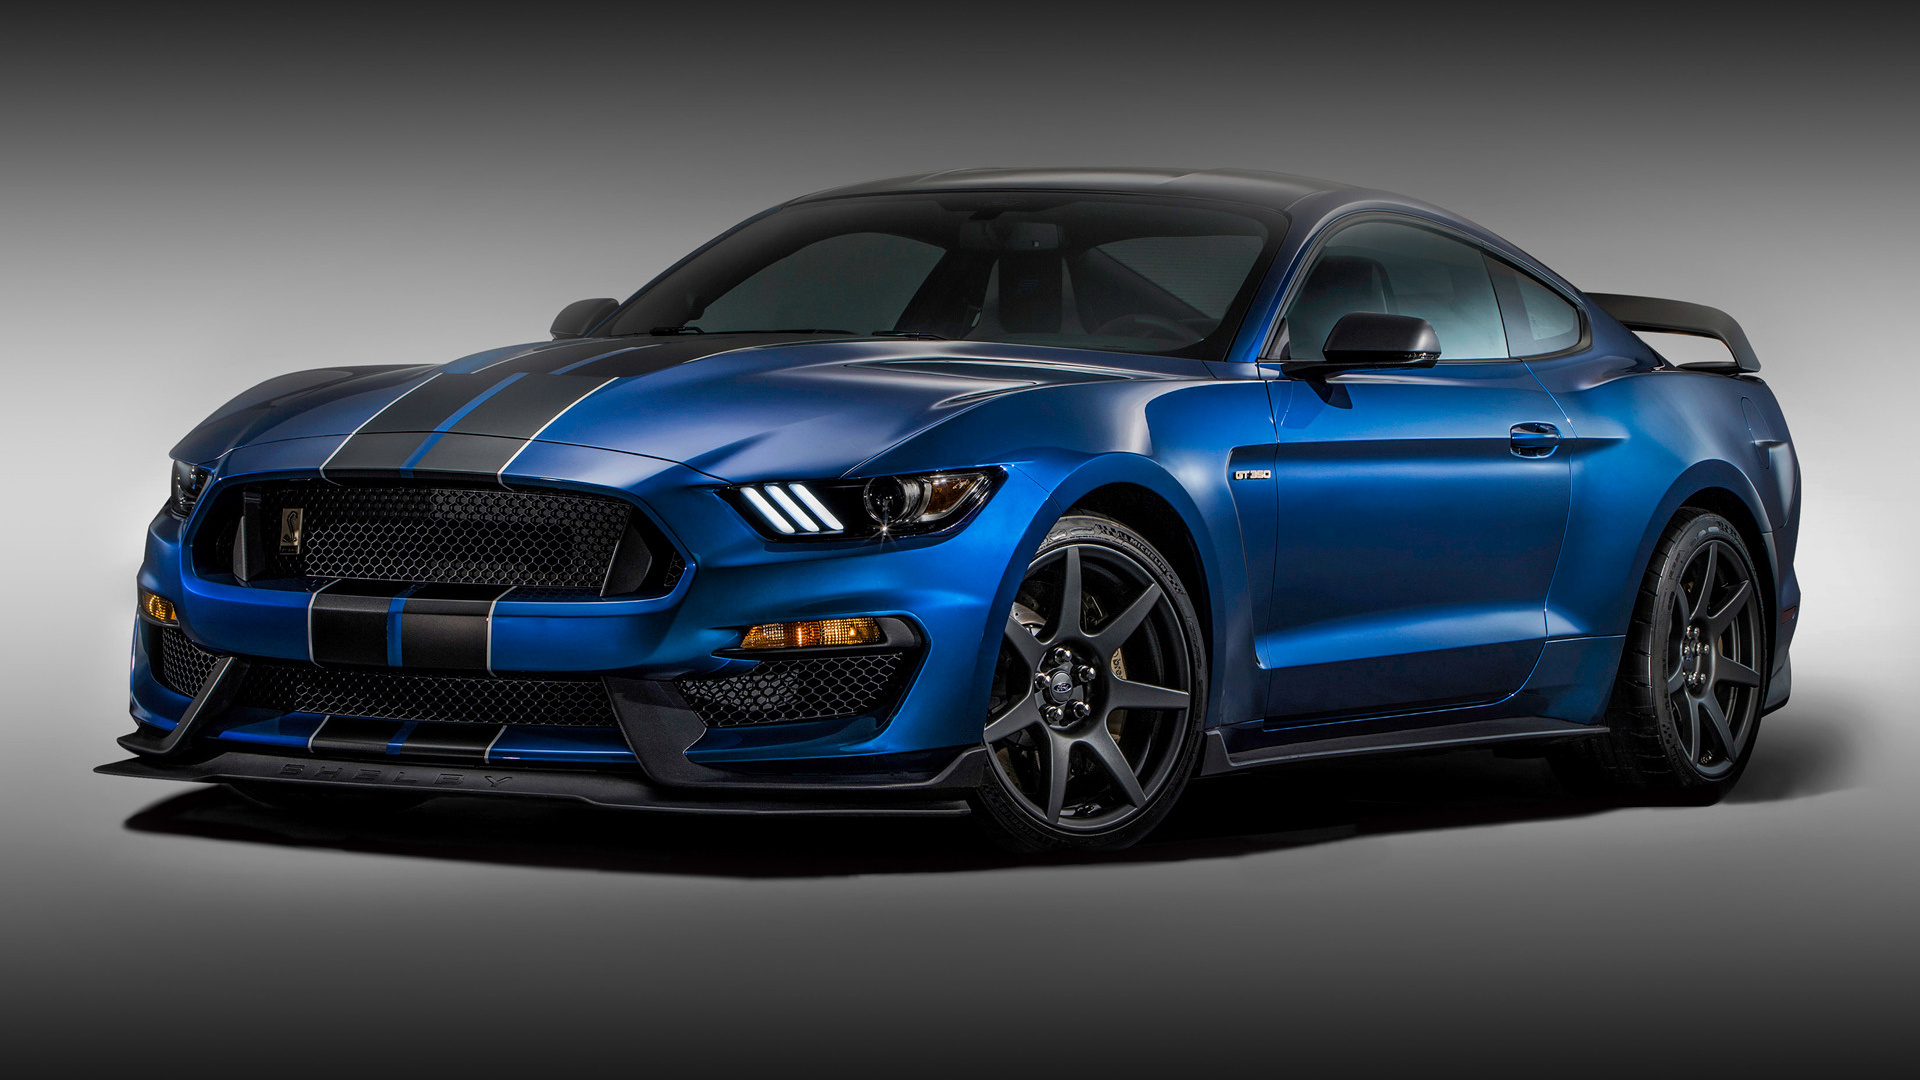 Shelby GT350R Mustang 2016 Wallpapers and HD Images 1920x1080